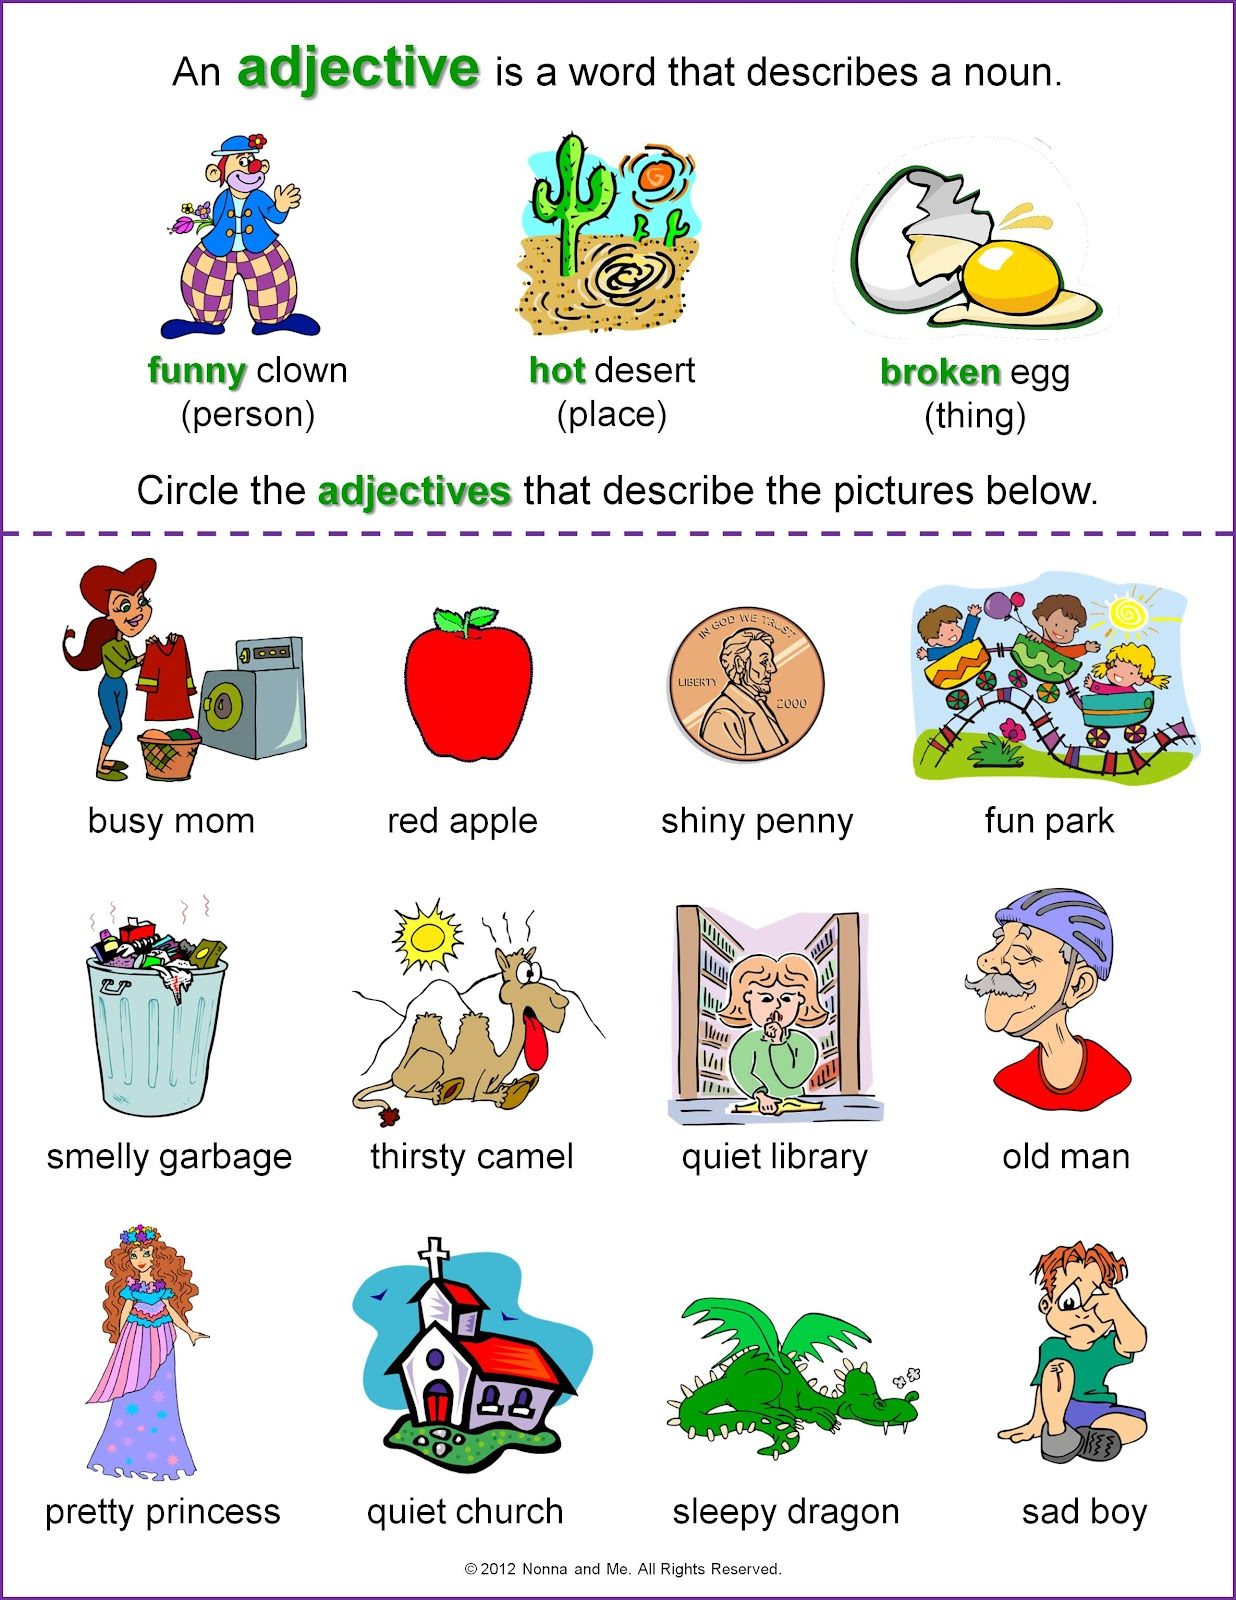 Worksheet Adjectives Grade 1 adjectives worksheets for grade 1 imatei memarchoapraga